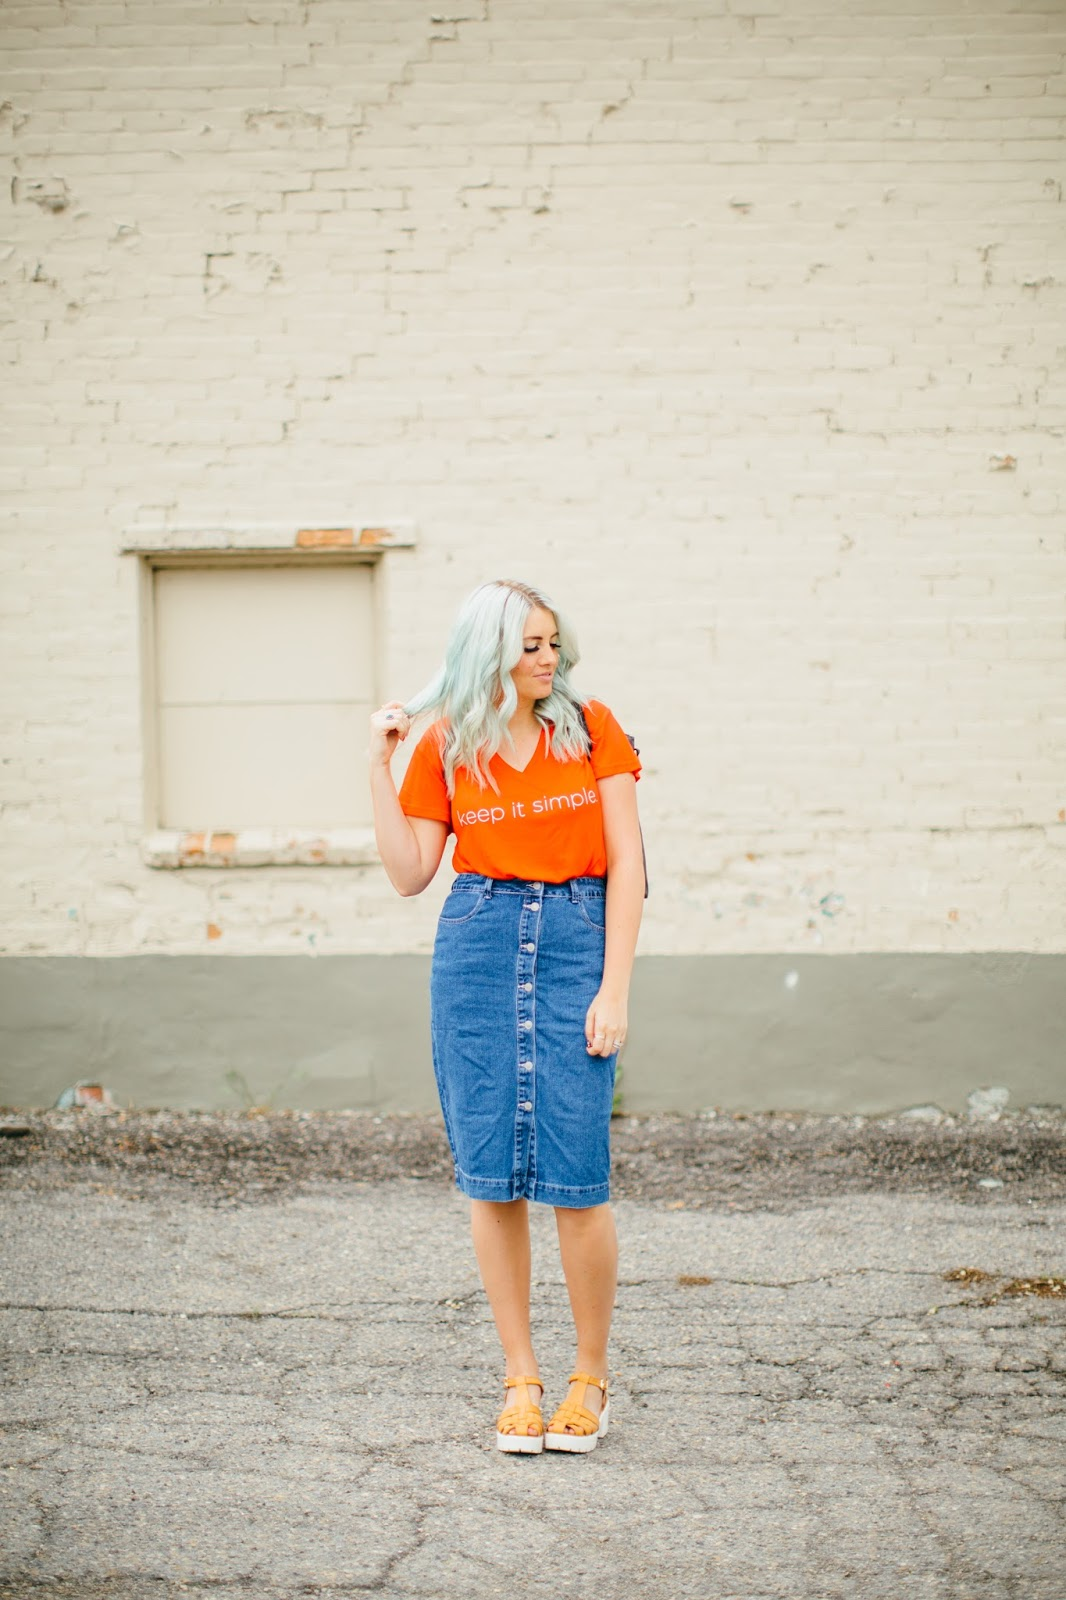 Keep It Simple Shirt, ASOS denim skirt, Utah Fashion Blogger